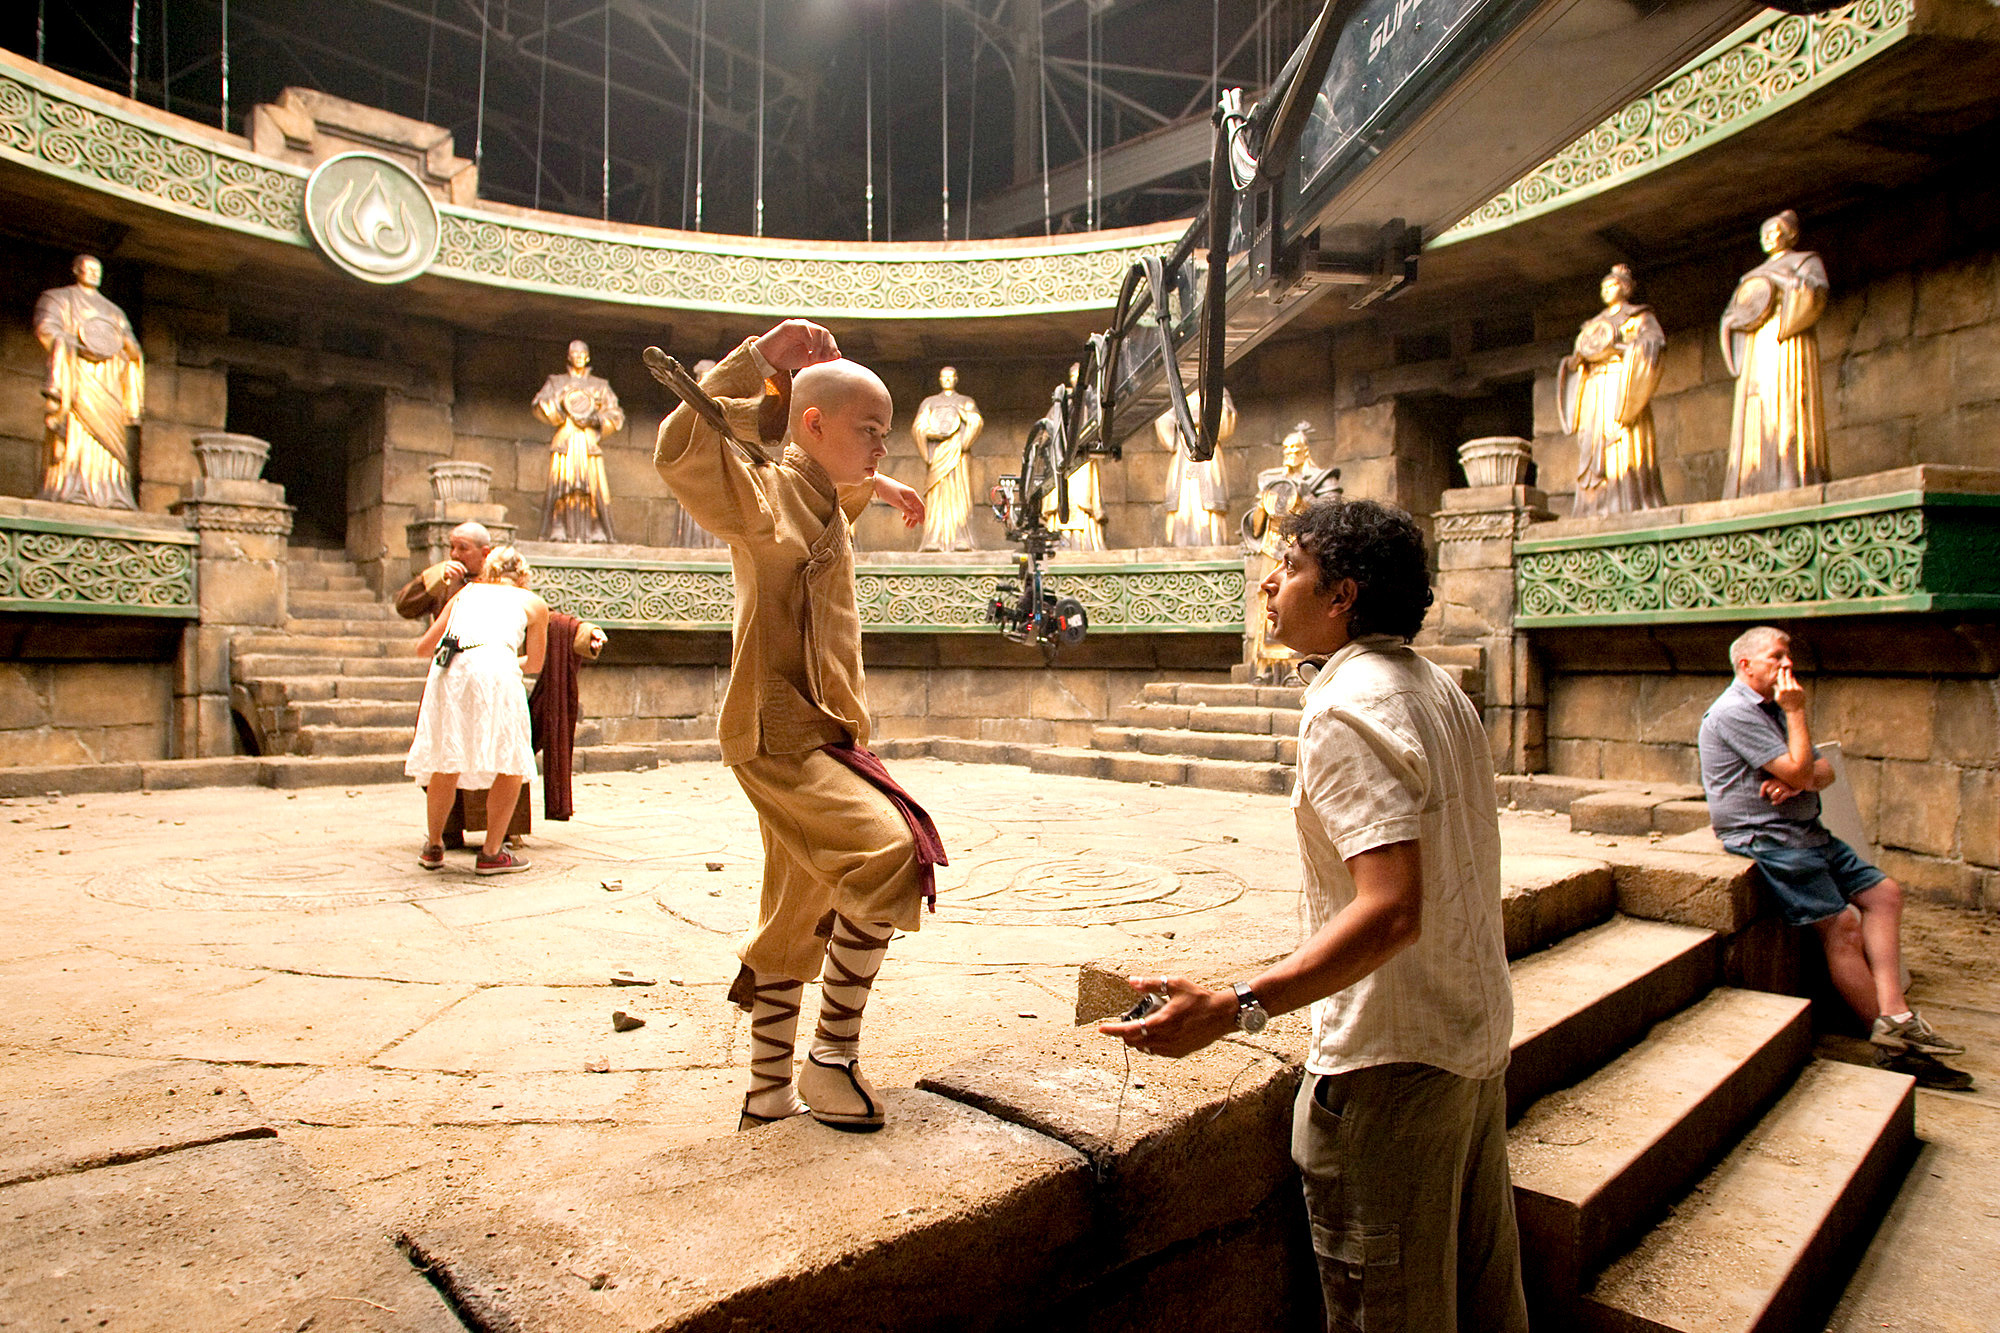 'Airbender' tax credit shows how far states will go to woo filmmakers